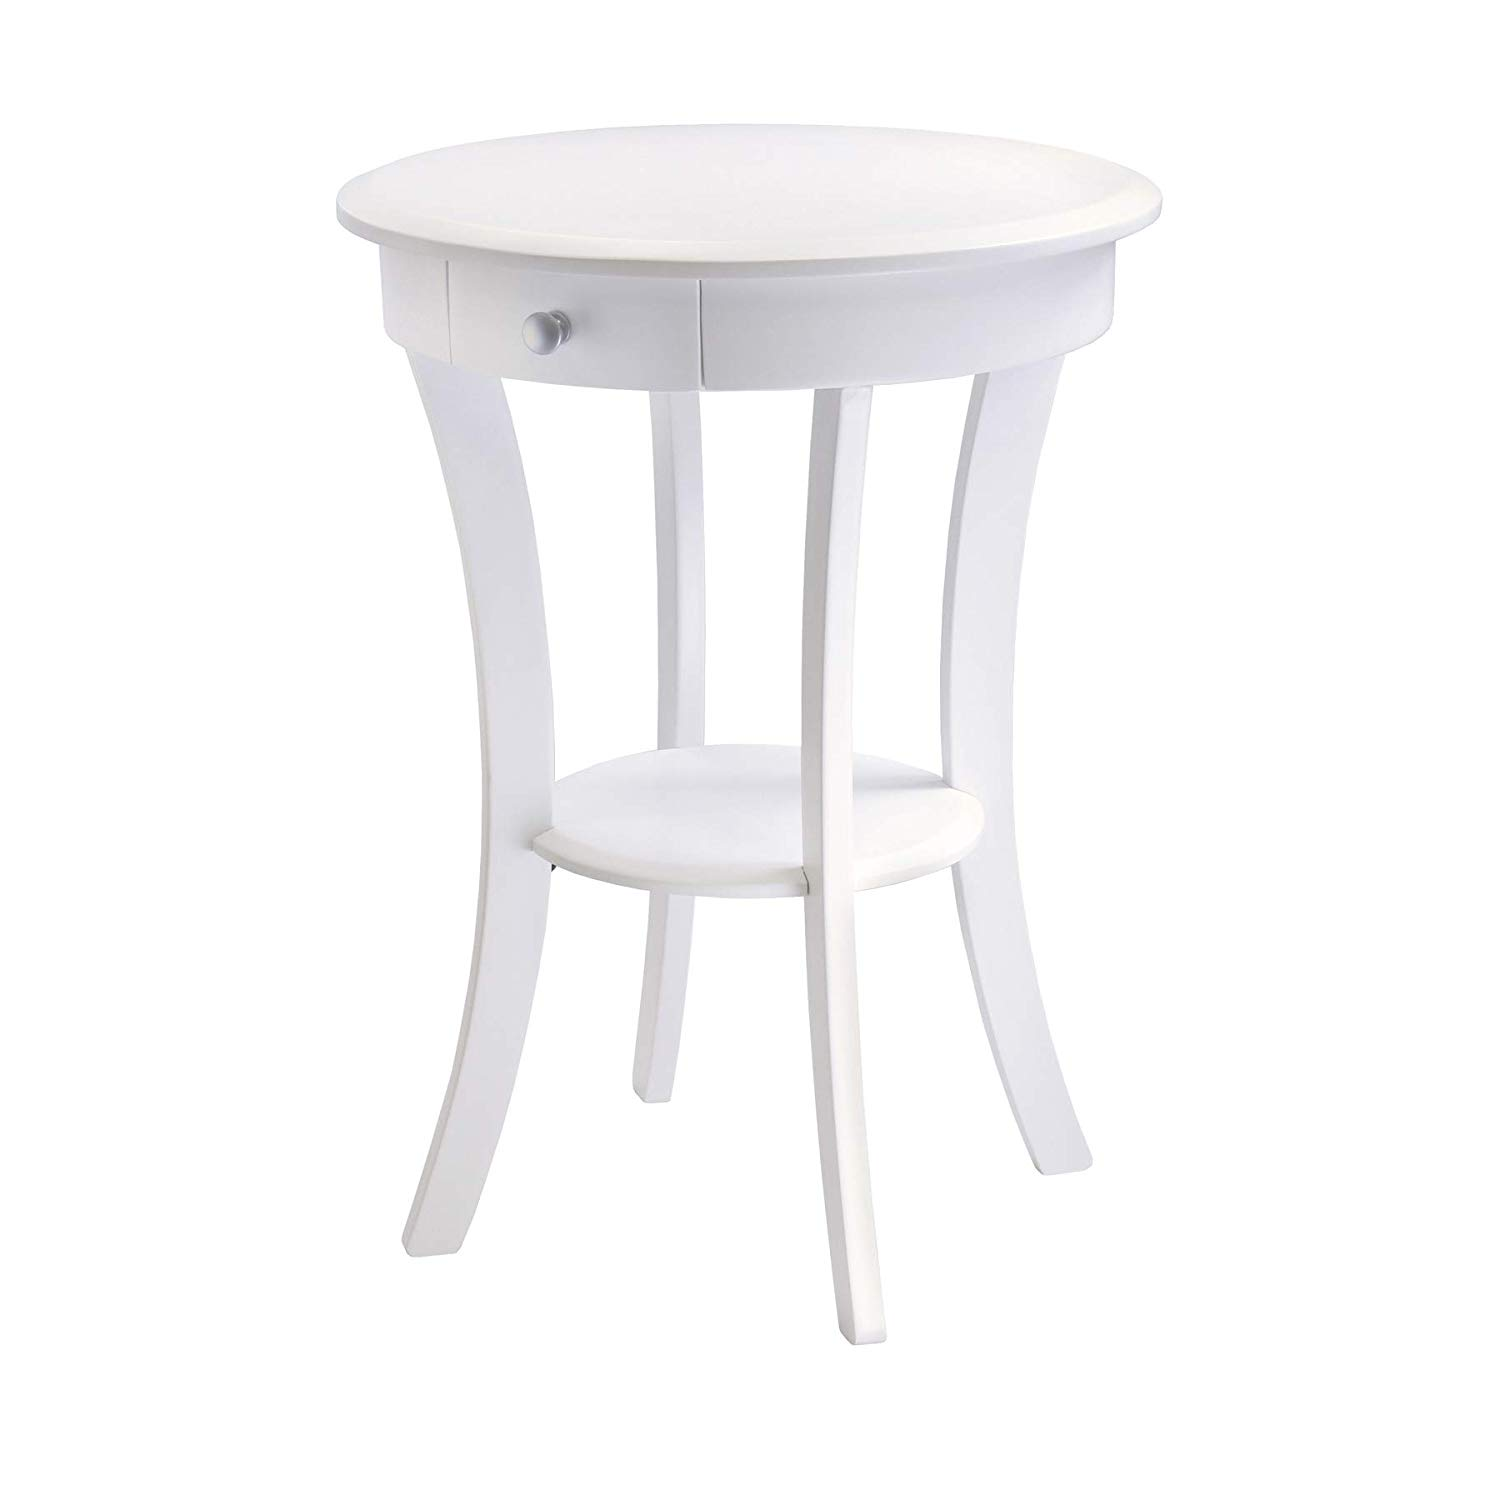 winsome wood sasha accent table white kitchen ugjsbl for nursery dining bar style modern furniture miami pottery barn ott tall nightstand with drawers marble like coffee treasure